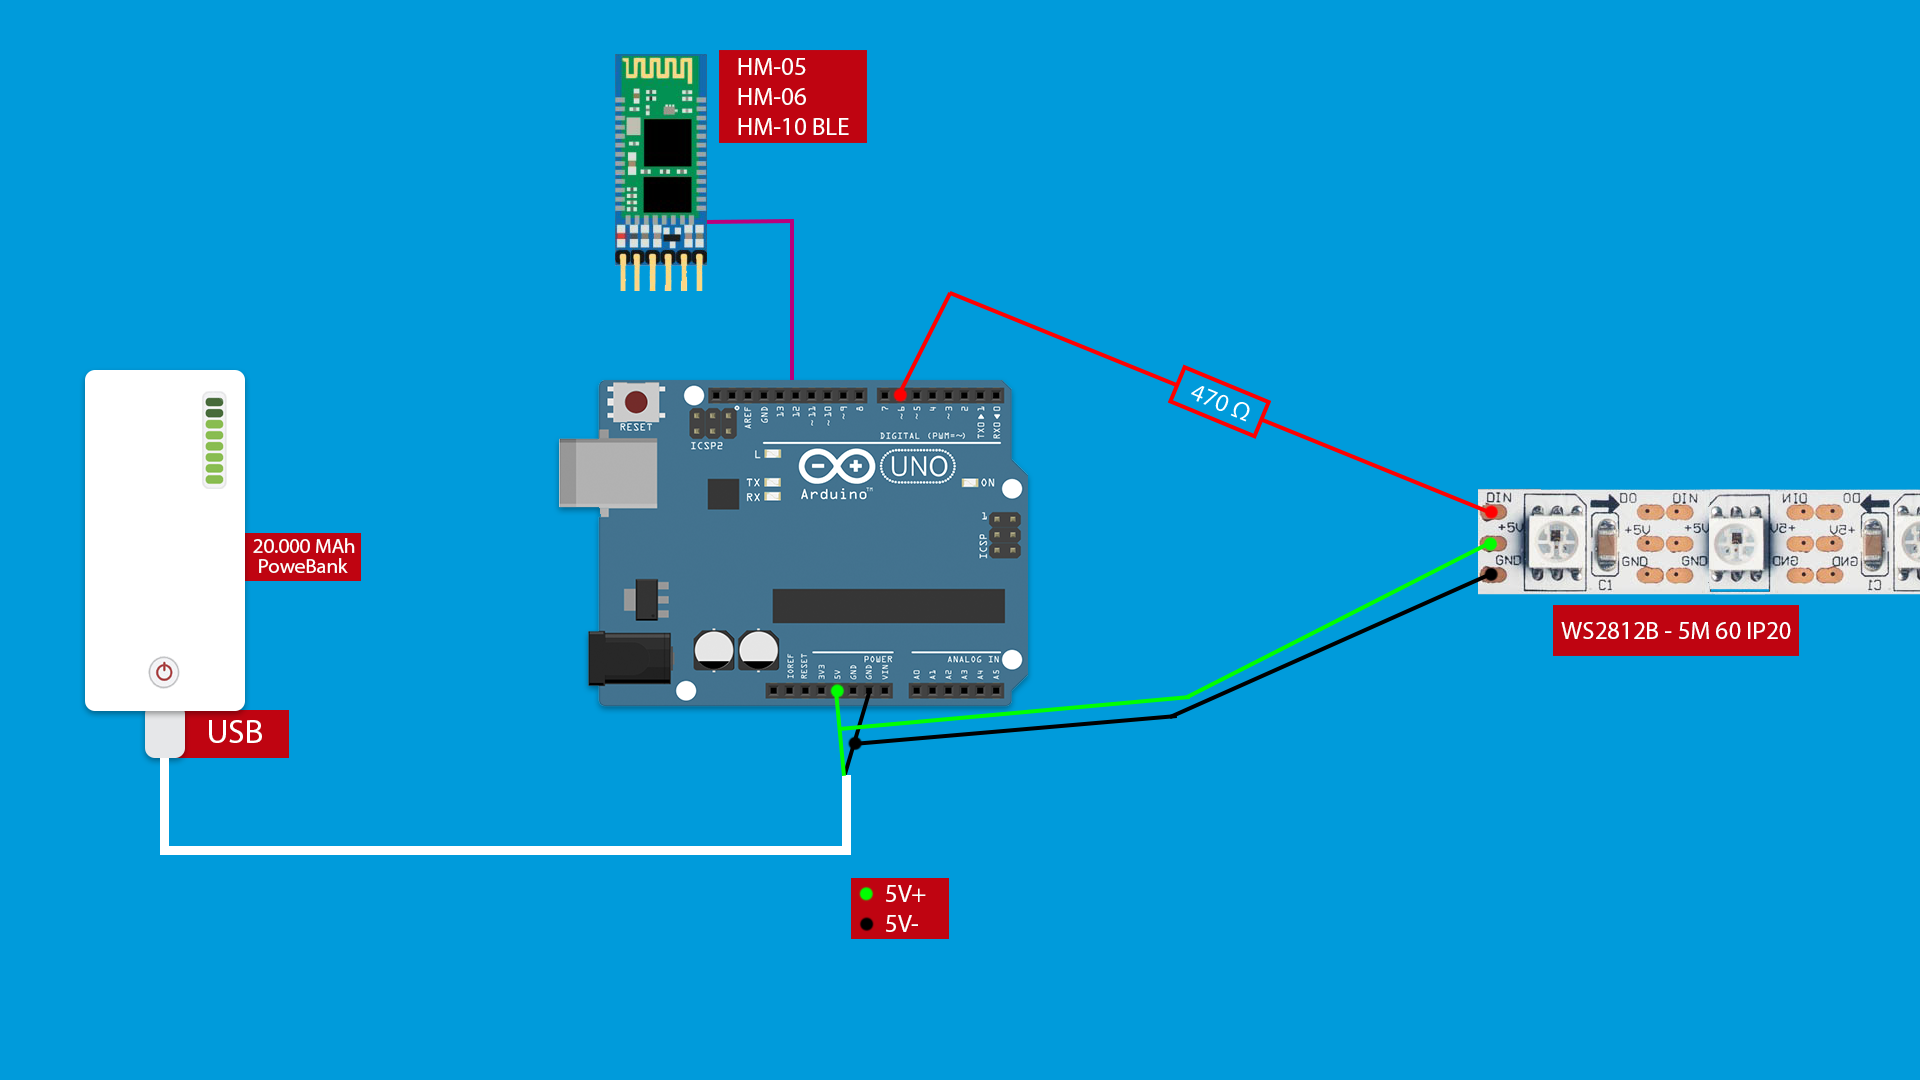 Topics Arduino Ws2812 Need Help With My Project About The Ldr Which Is Prime Sensing Component Of Circuit